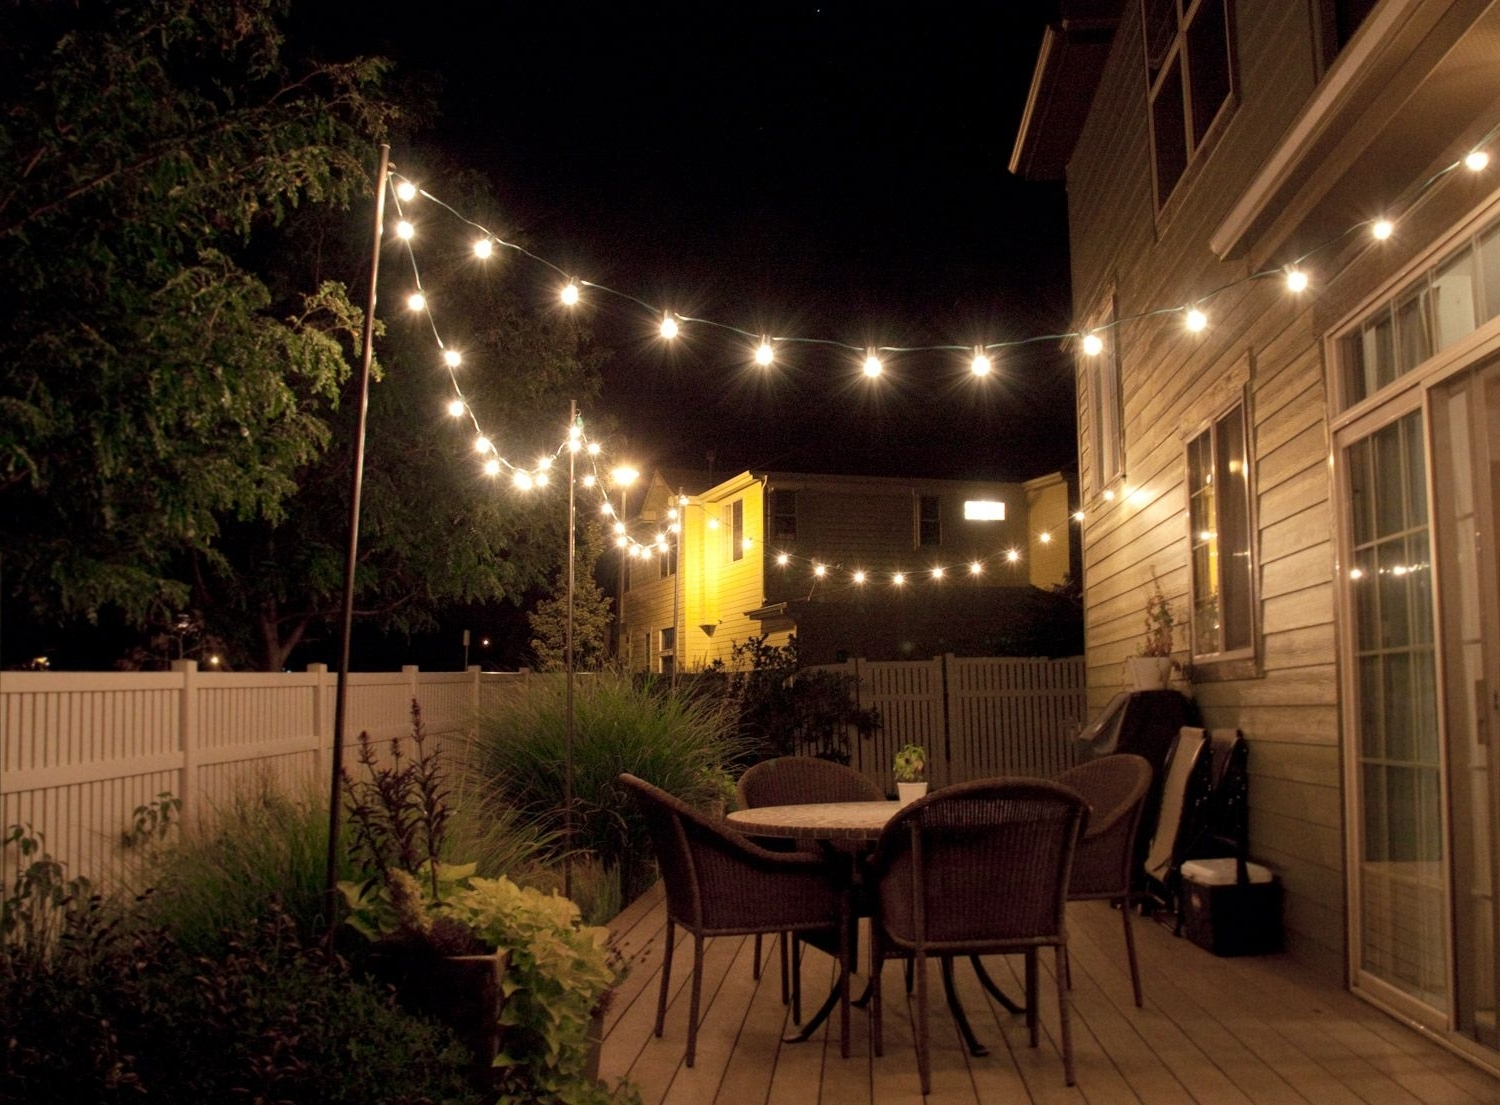 Outdoor Hanging String Lanterns Pertaining To Recent How To Make Inexpensive Poles To Hang String Lights On – Café Style (View 2 of 20)